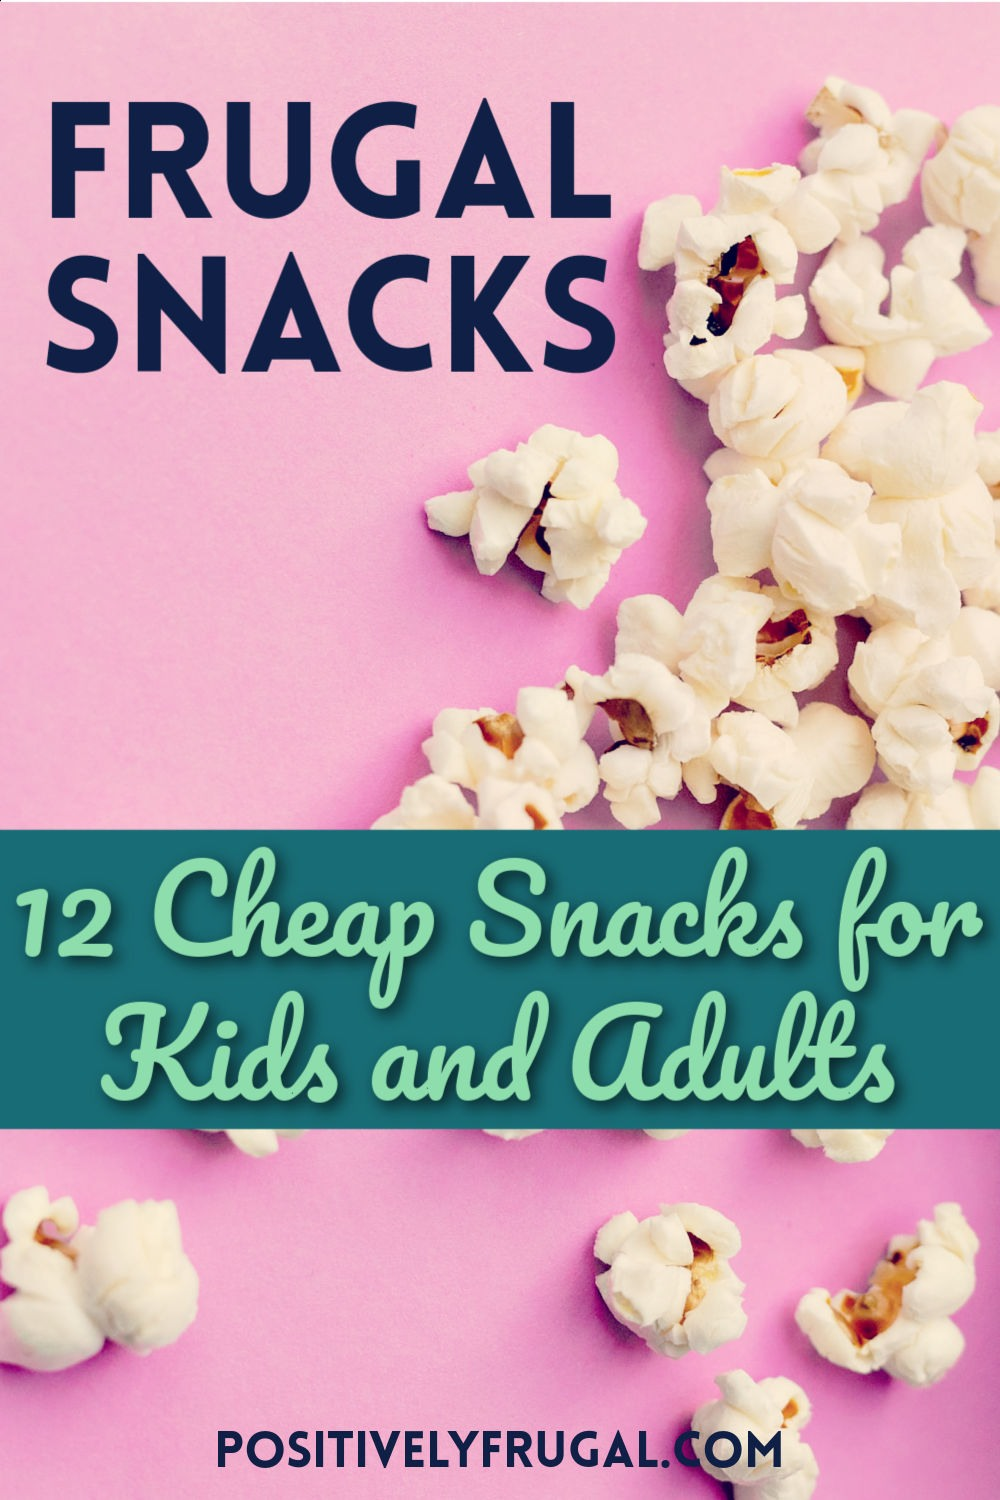 Frugal Snacks Cheap Snacks for Kids and Adults by PositivelyFrugal.com